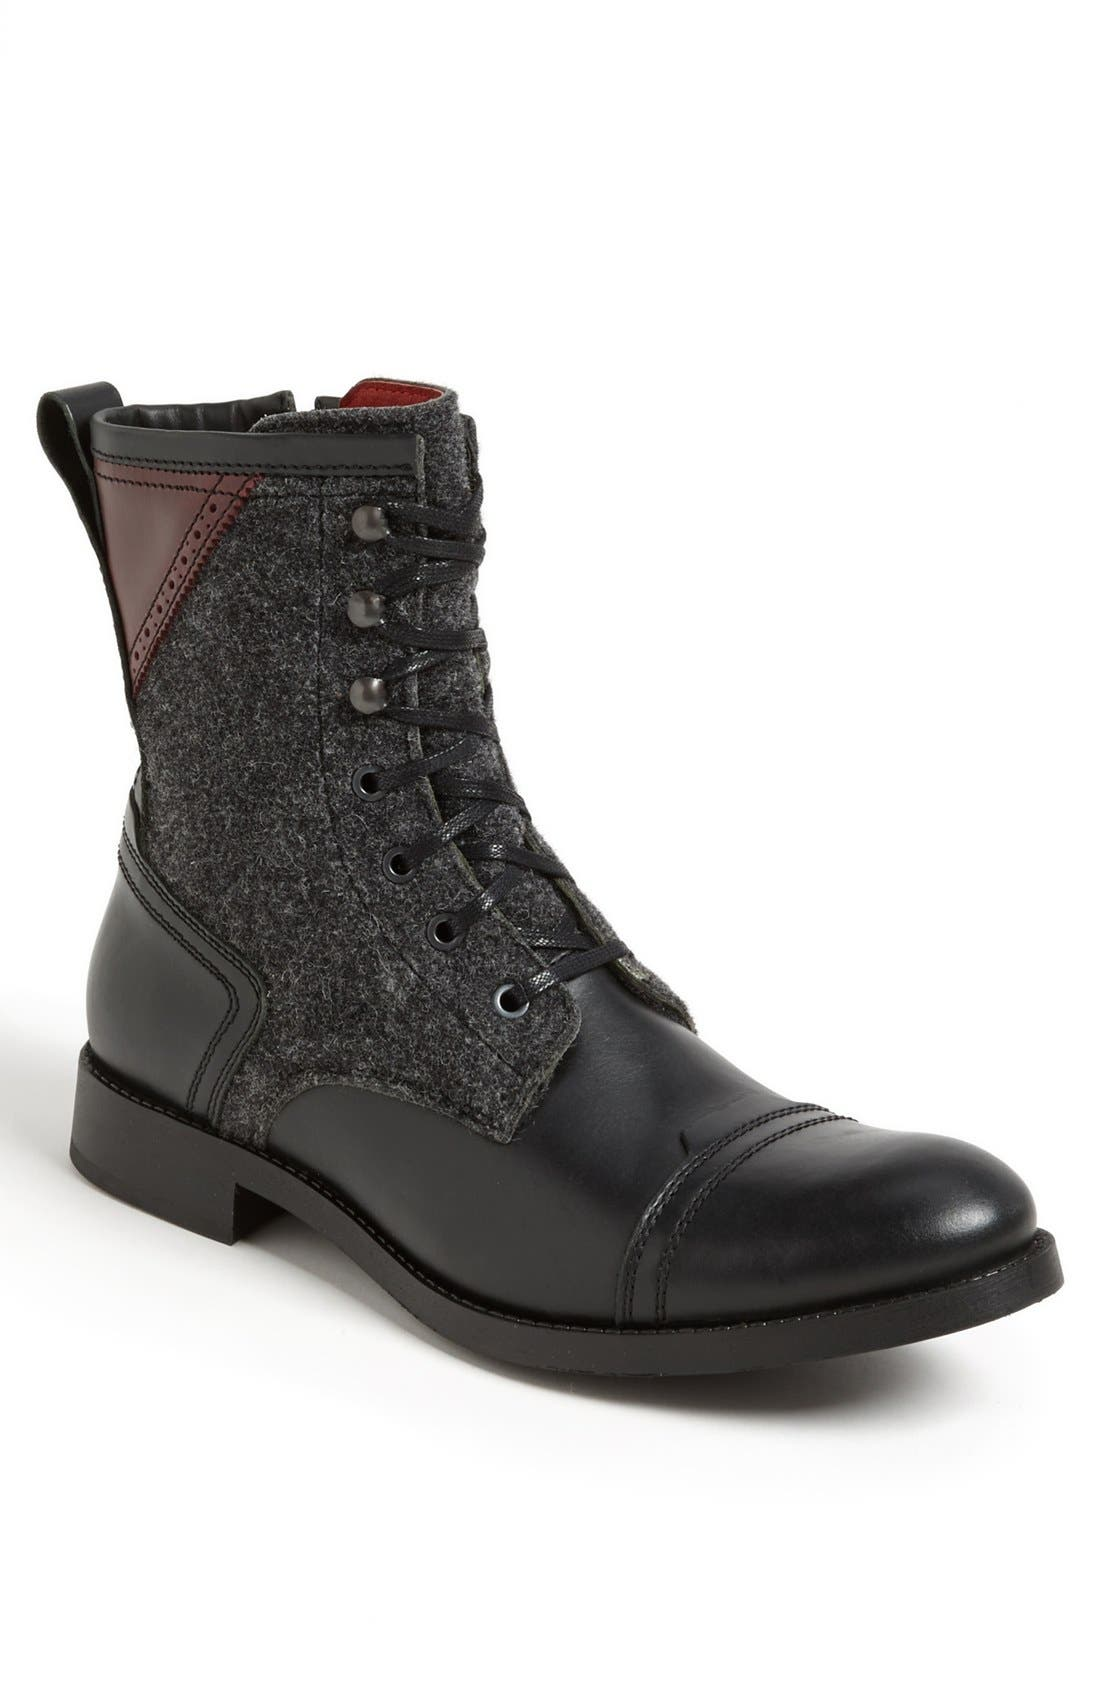 Alternate Image 1 Selected - Kenneth Cole New York 'Brush It Off' Cap Toe Boot